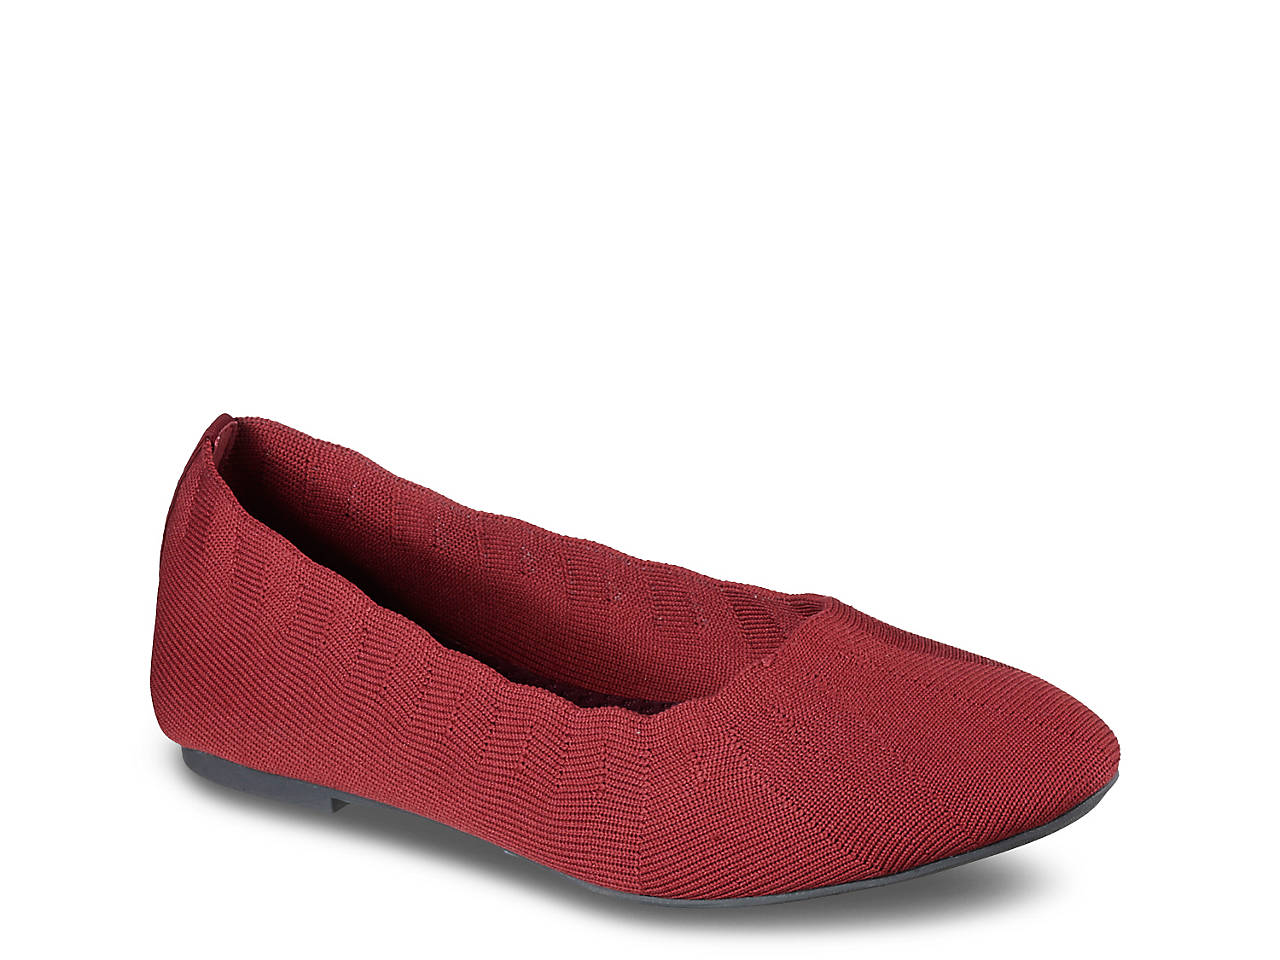 Skechers Cleo Bewitch Women's ... Flats